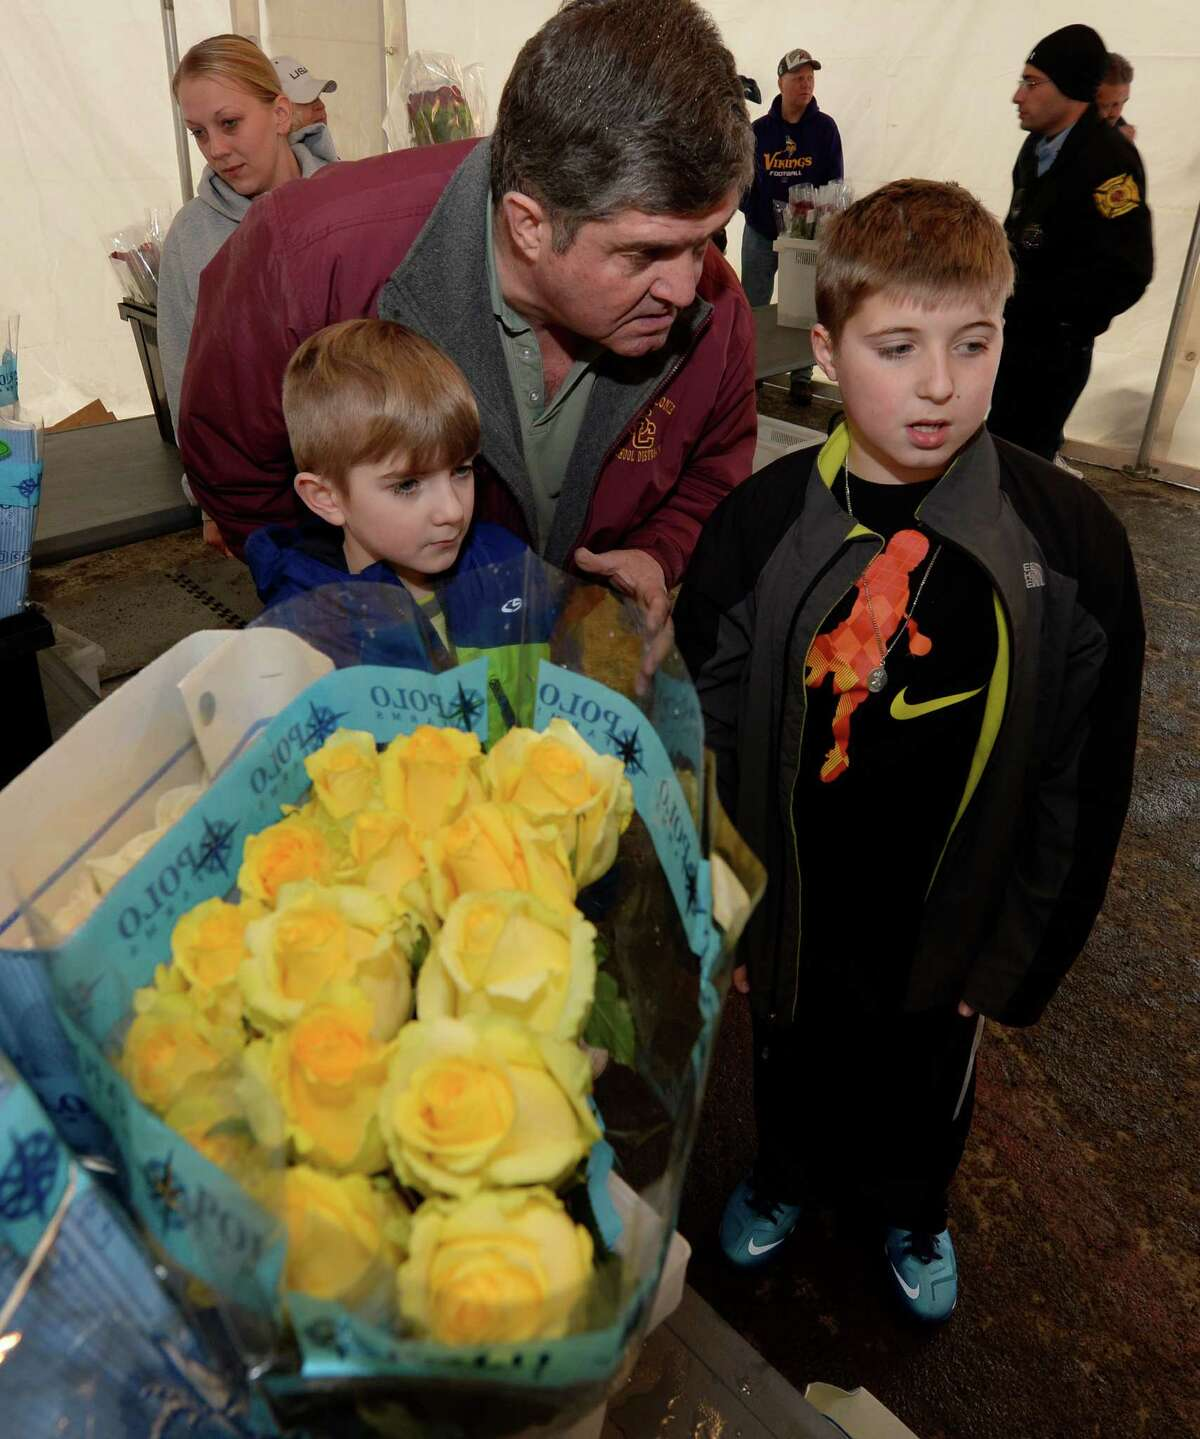 Grandfather Brian Casey give guidance to his grandson's Luke Tarpay, 8, left, and Casey, 12, who were buying roses for their mother Cori Tarpay during the Colonie Fire Department's annual Valentine's Rose Sale Thursday morning, Feb. 13, 2014, in Colonie, N.Y. The Colonie Fire Company uses the rose sale as a benefit for the fire company. (Skip Dickstein / Times Union)